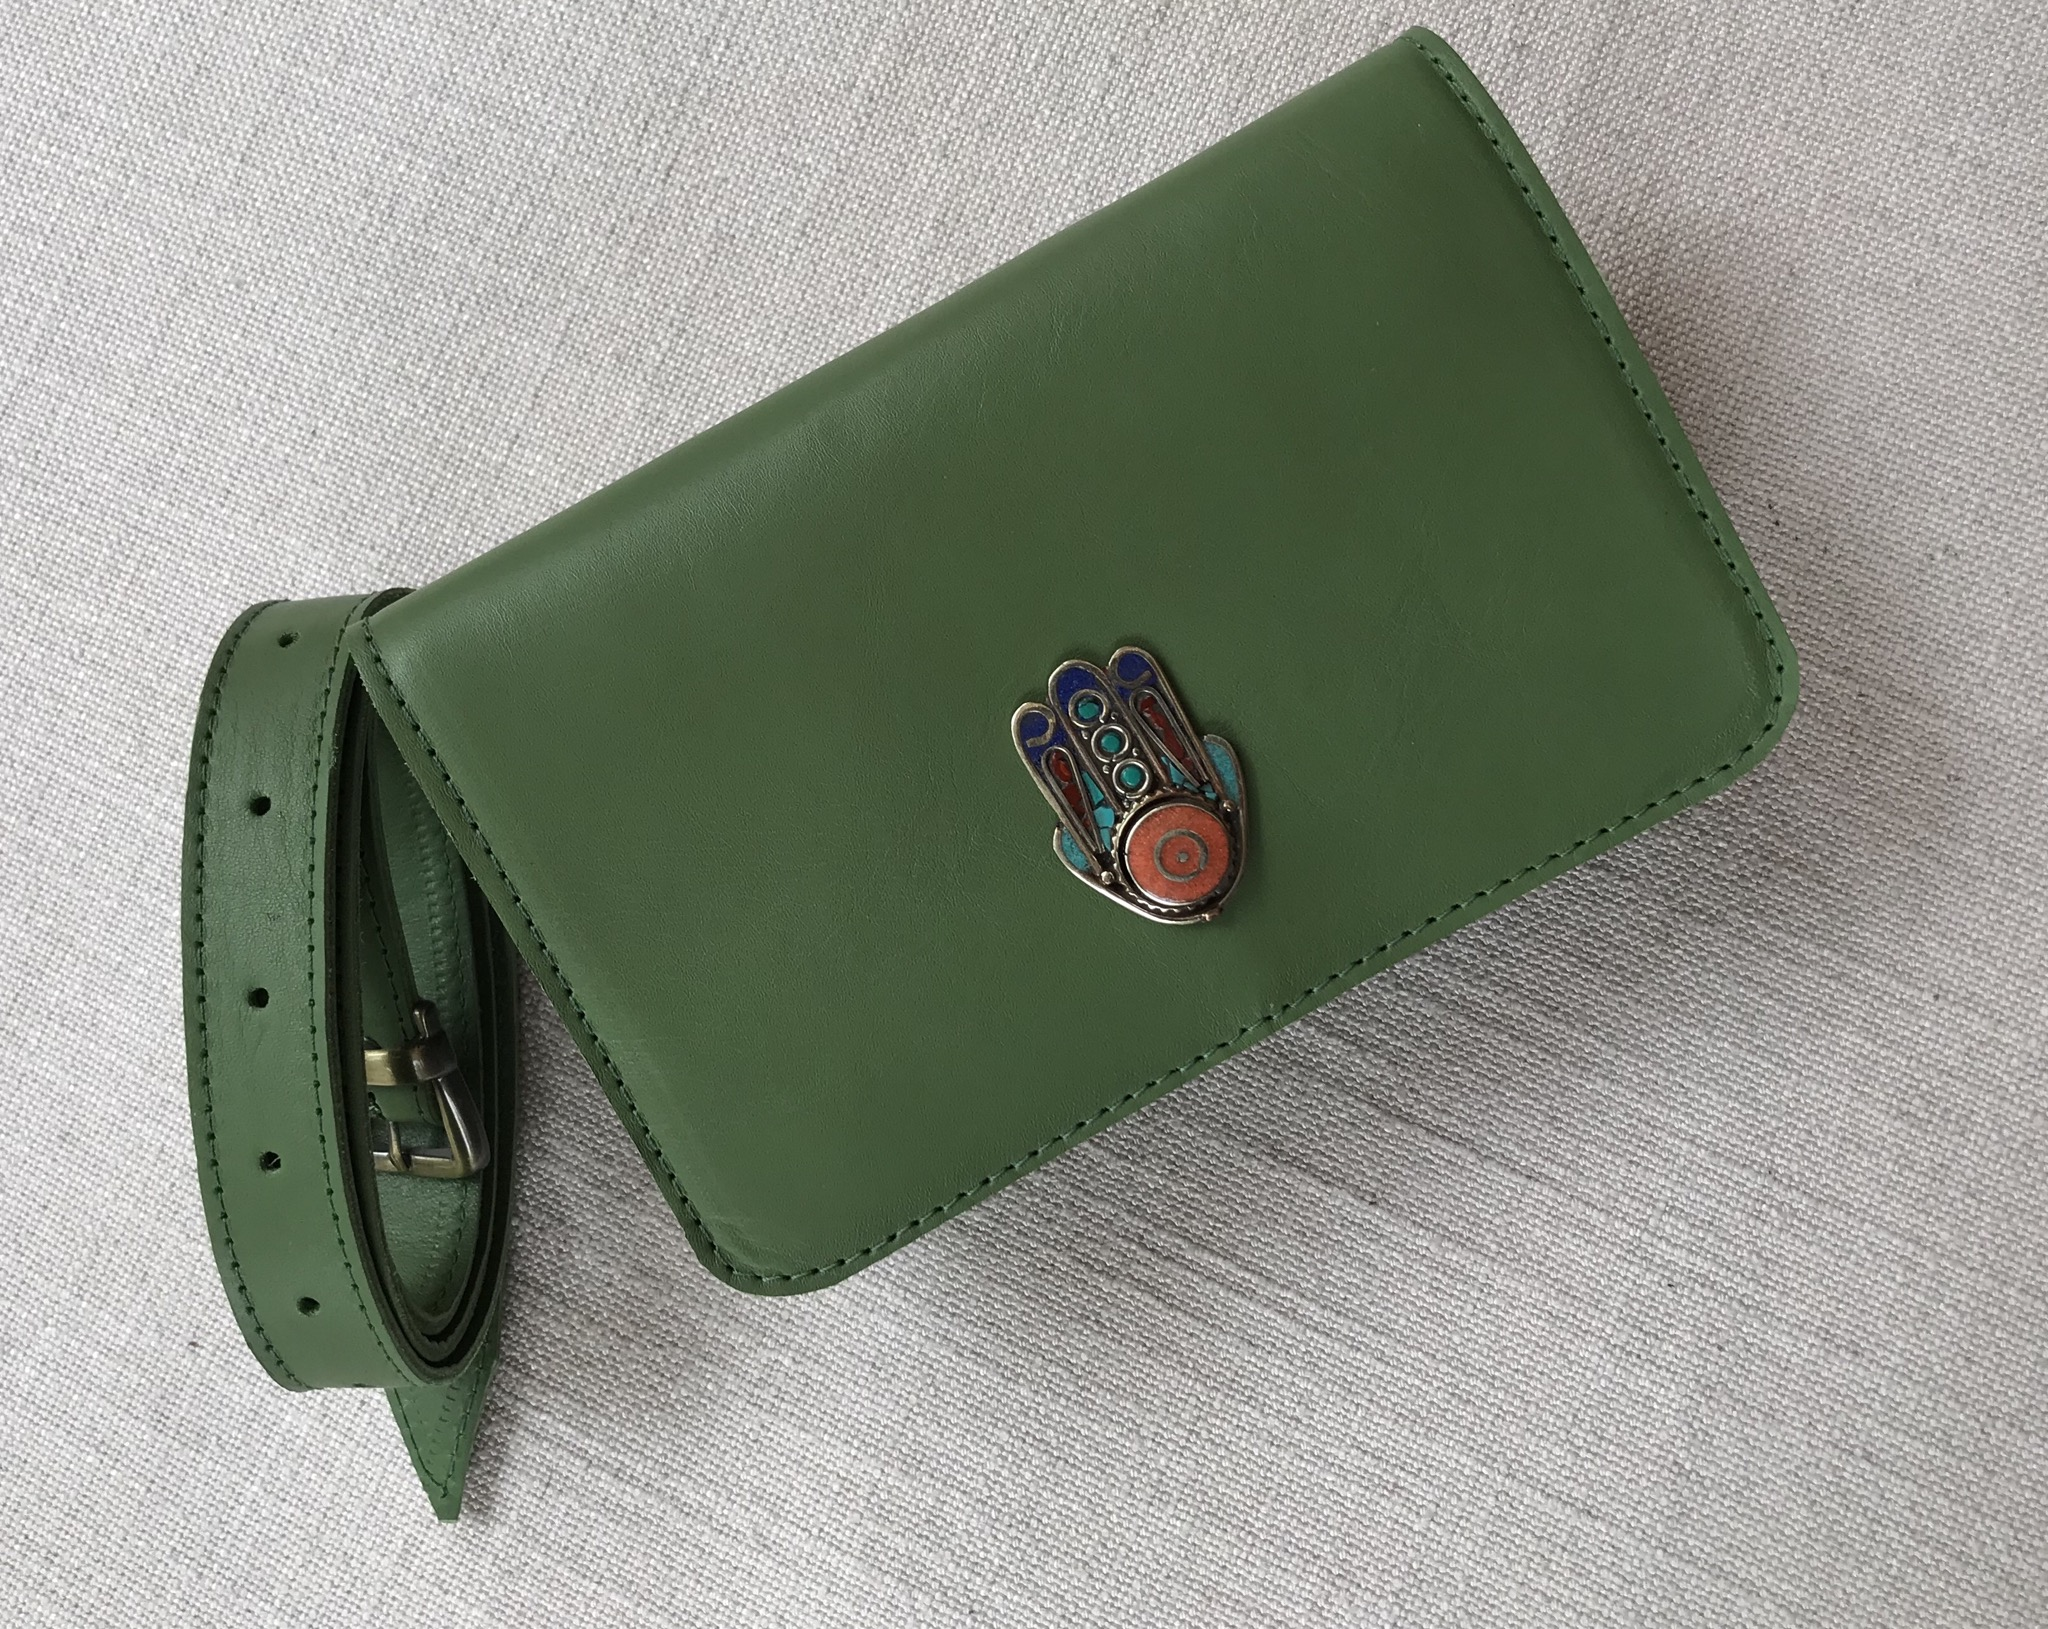 Beltbag leather green with khmissa